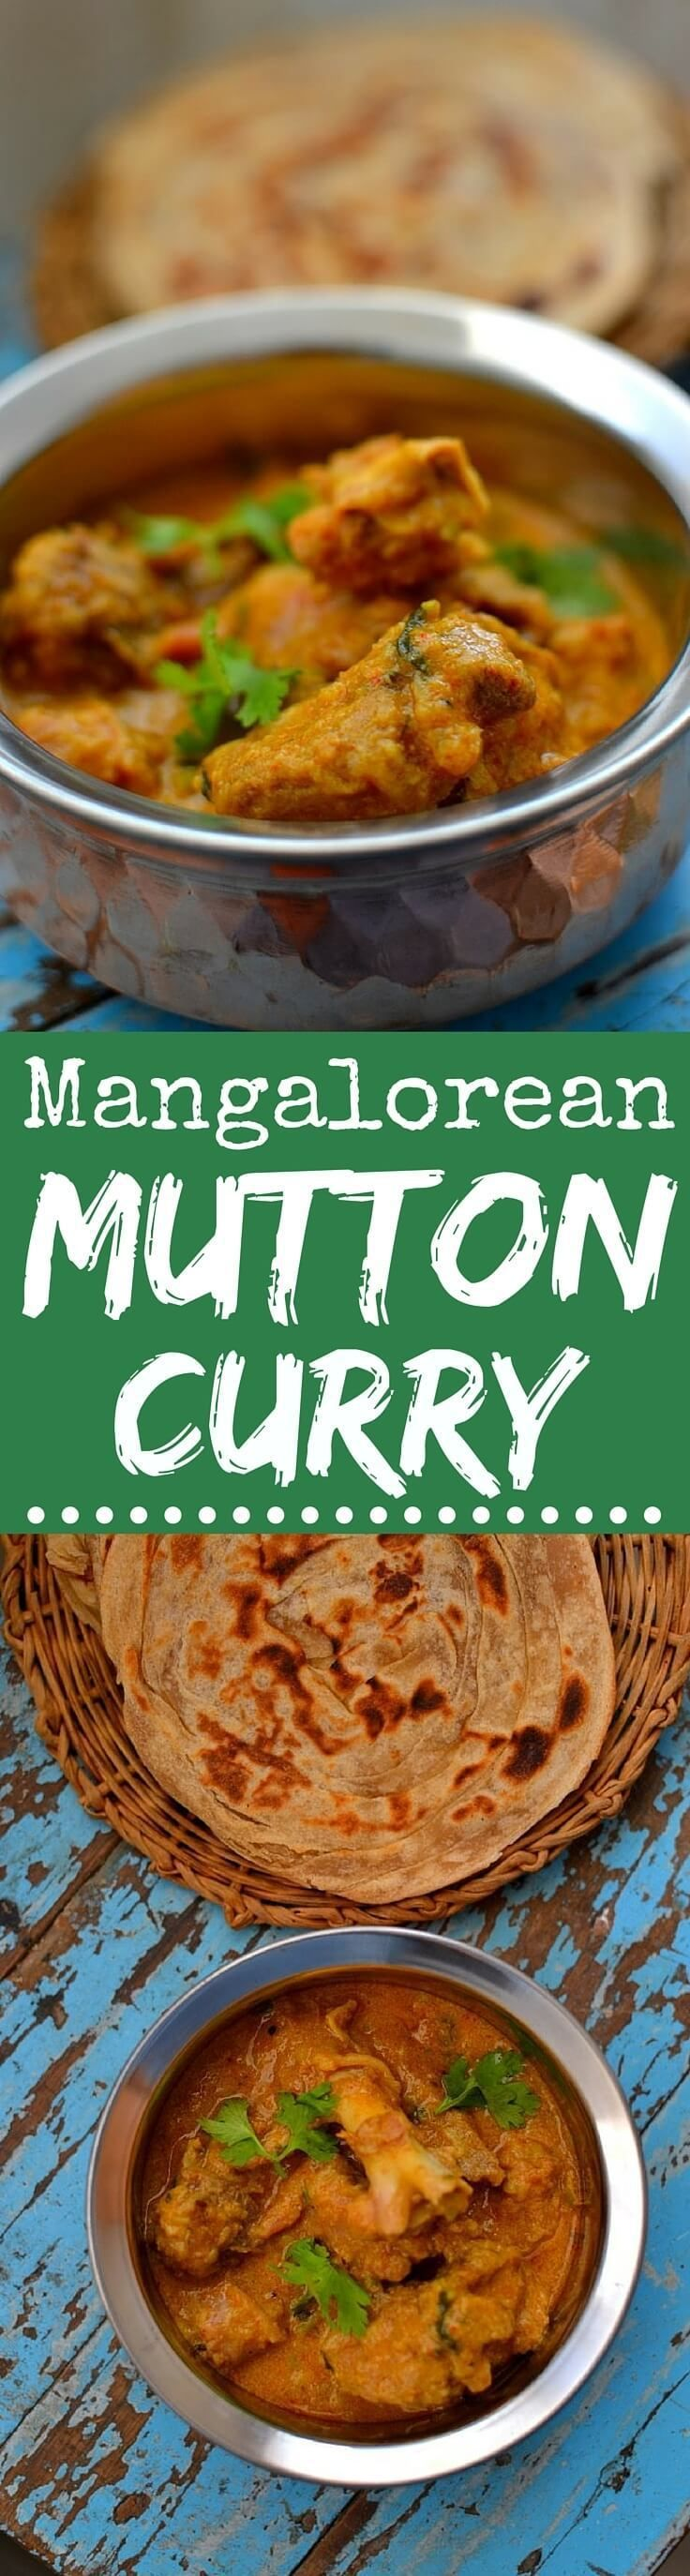 Goat liver with dill leaves indian kitchen cooking recipes - Let S Meat Mangalorean Mutton Curry West Coastthe Southcookbook Recipesindian